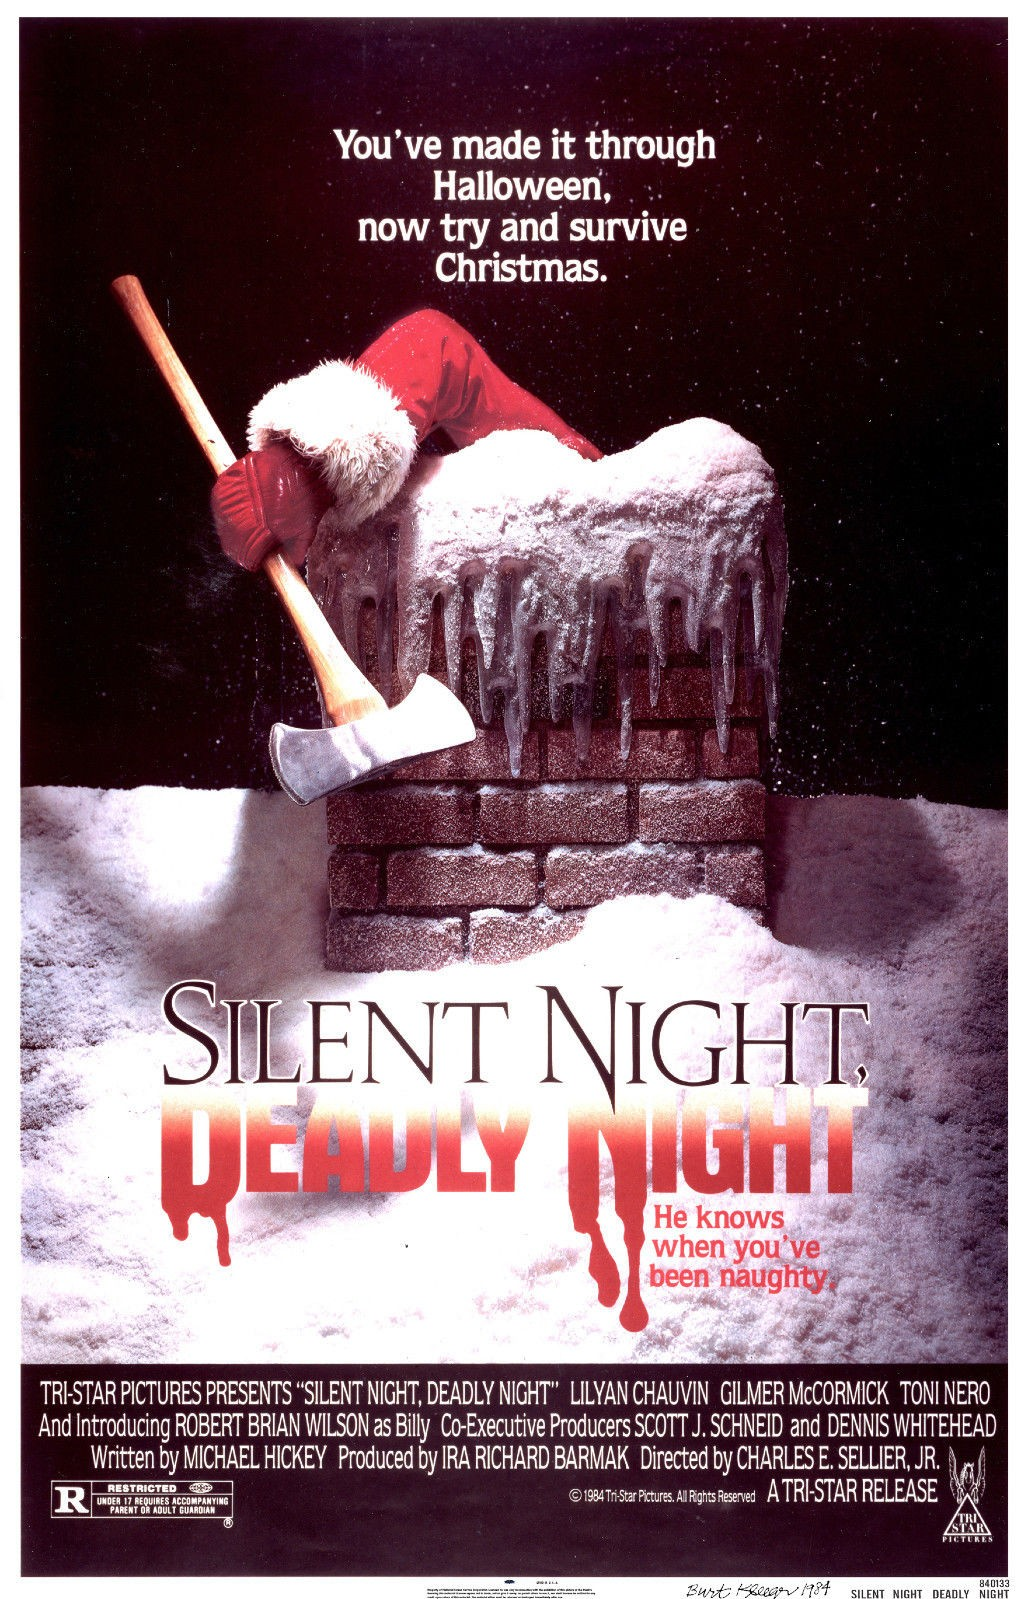 The poster for Silent Night Deadly Night which shows Santa holding an axe climbing out of a chimny the text says he knows when you've been naughty